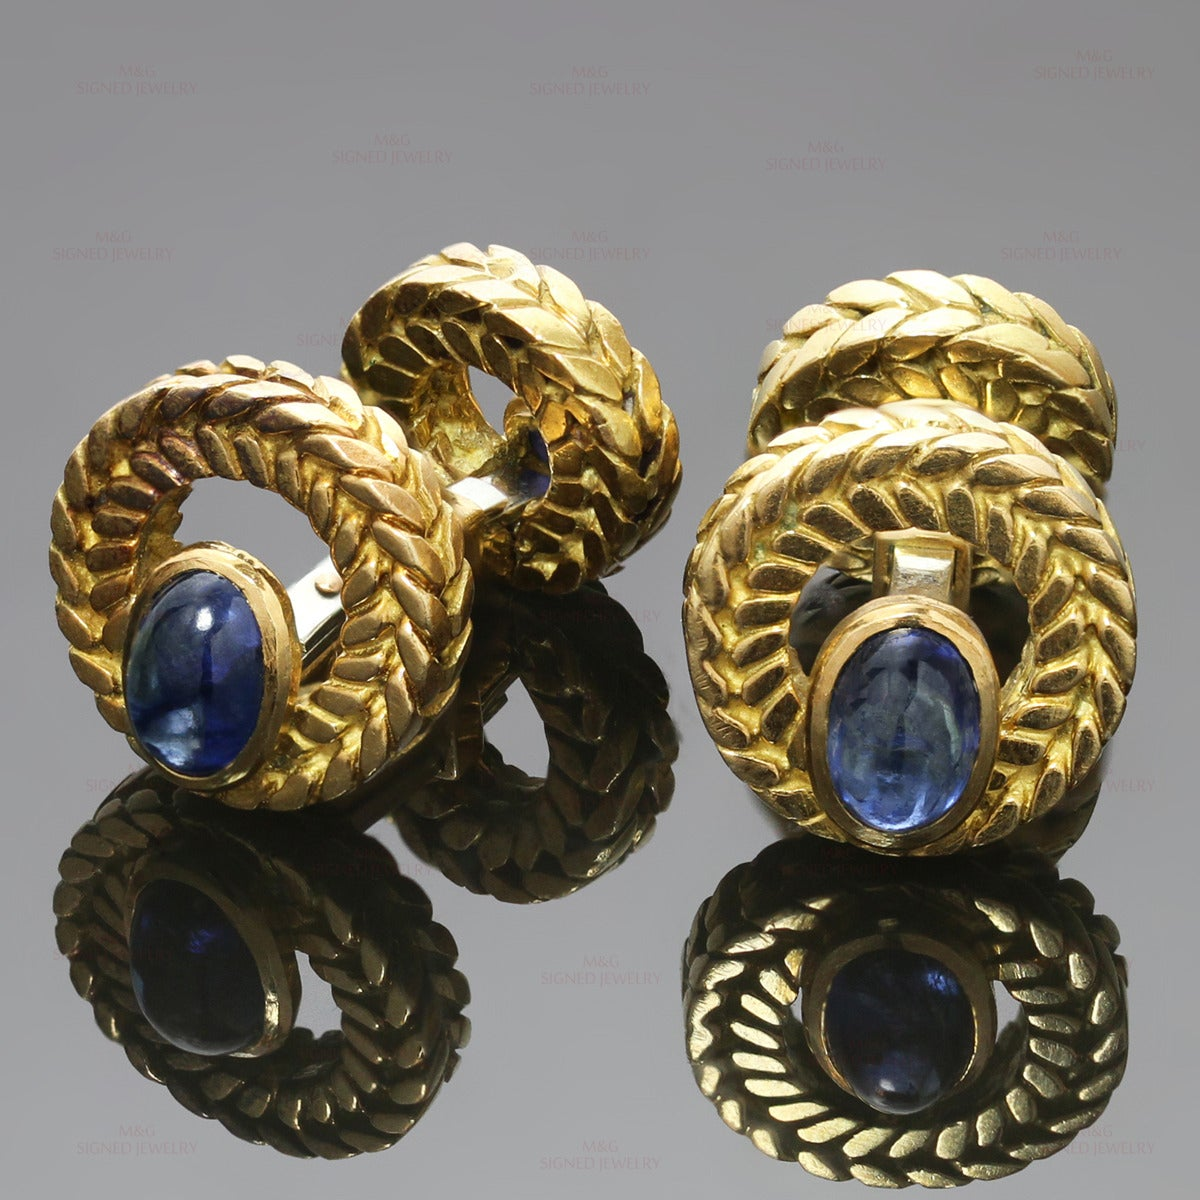 Van Cleef & Arpels Cabochon Sapphire Gold Cufflinks Great Father's Day Gift In Good Condition For Sale In New York, NY